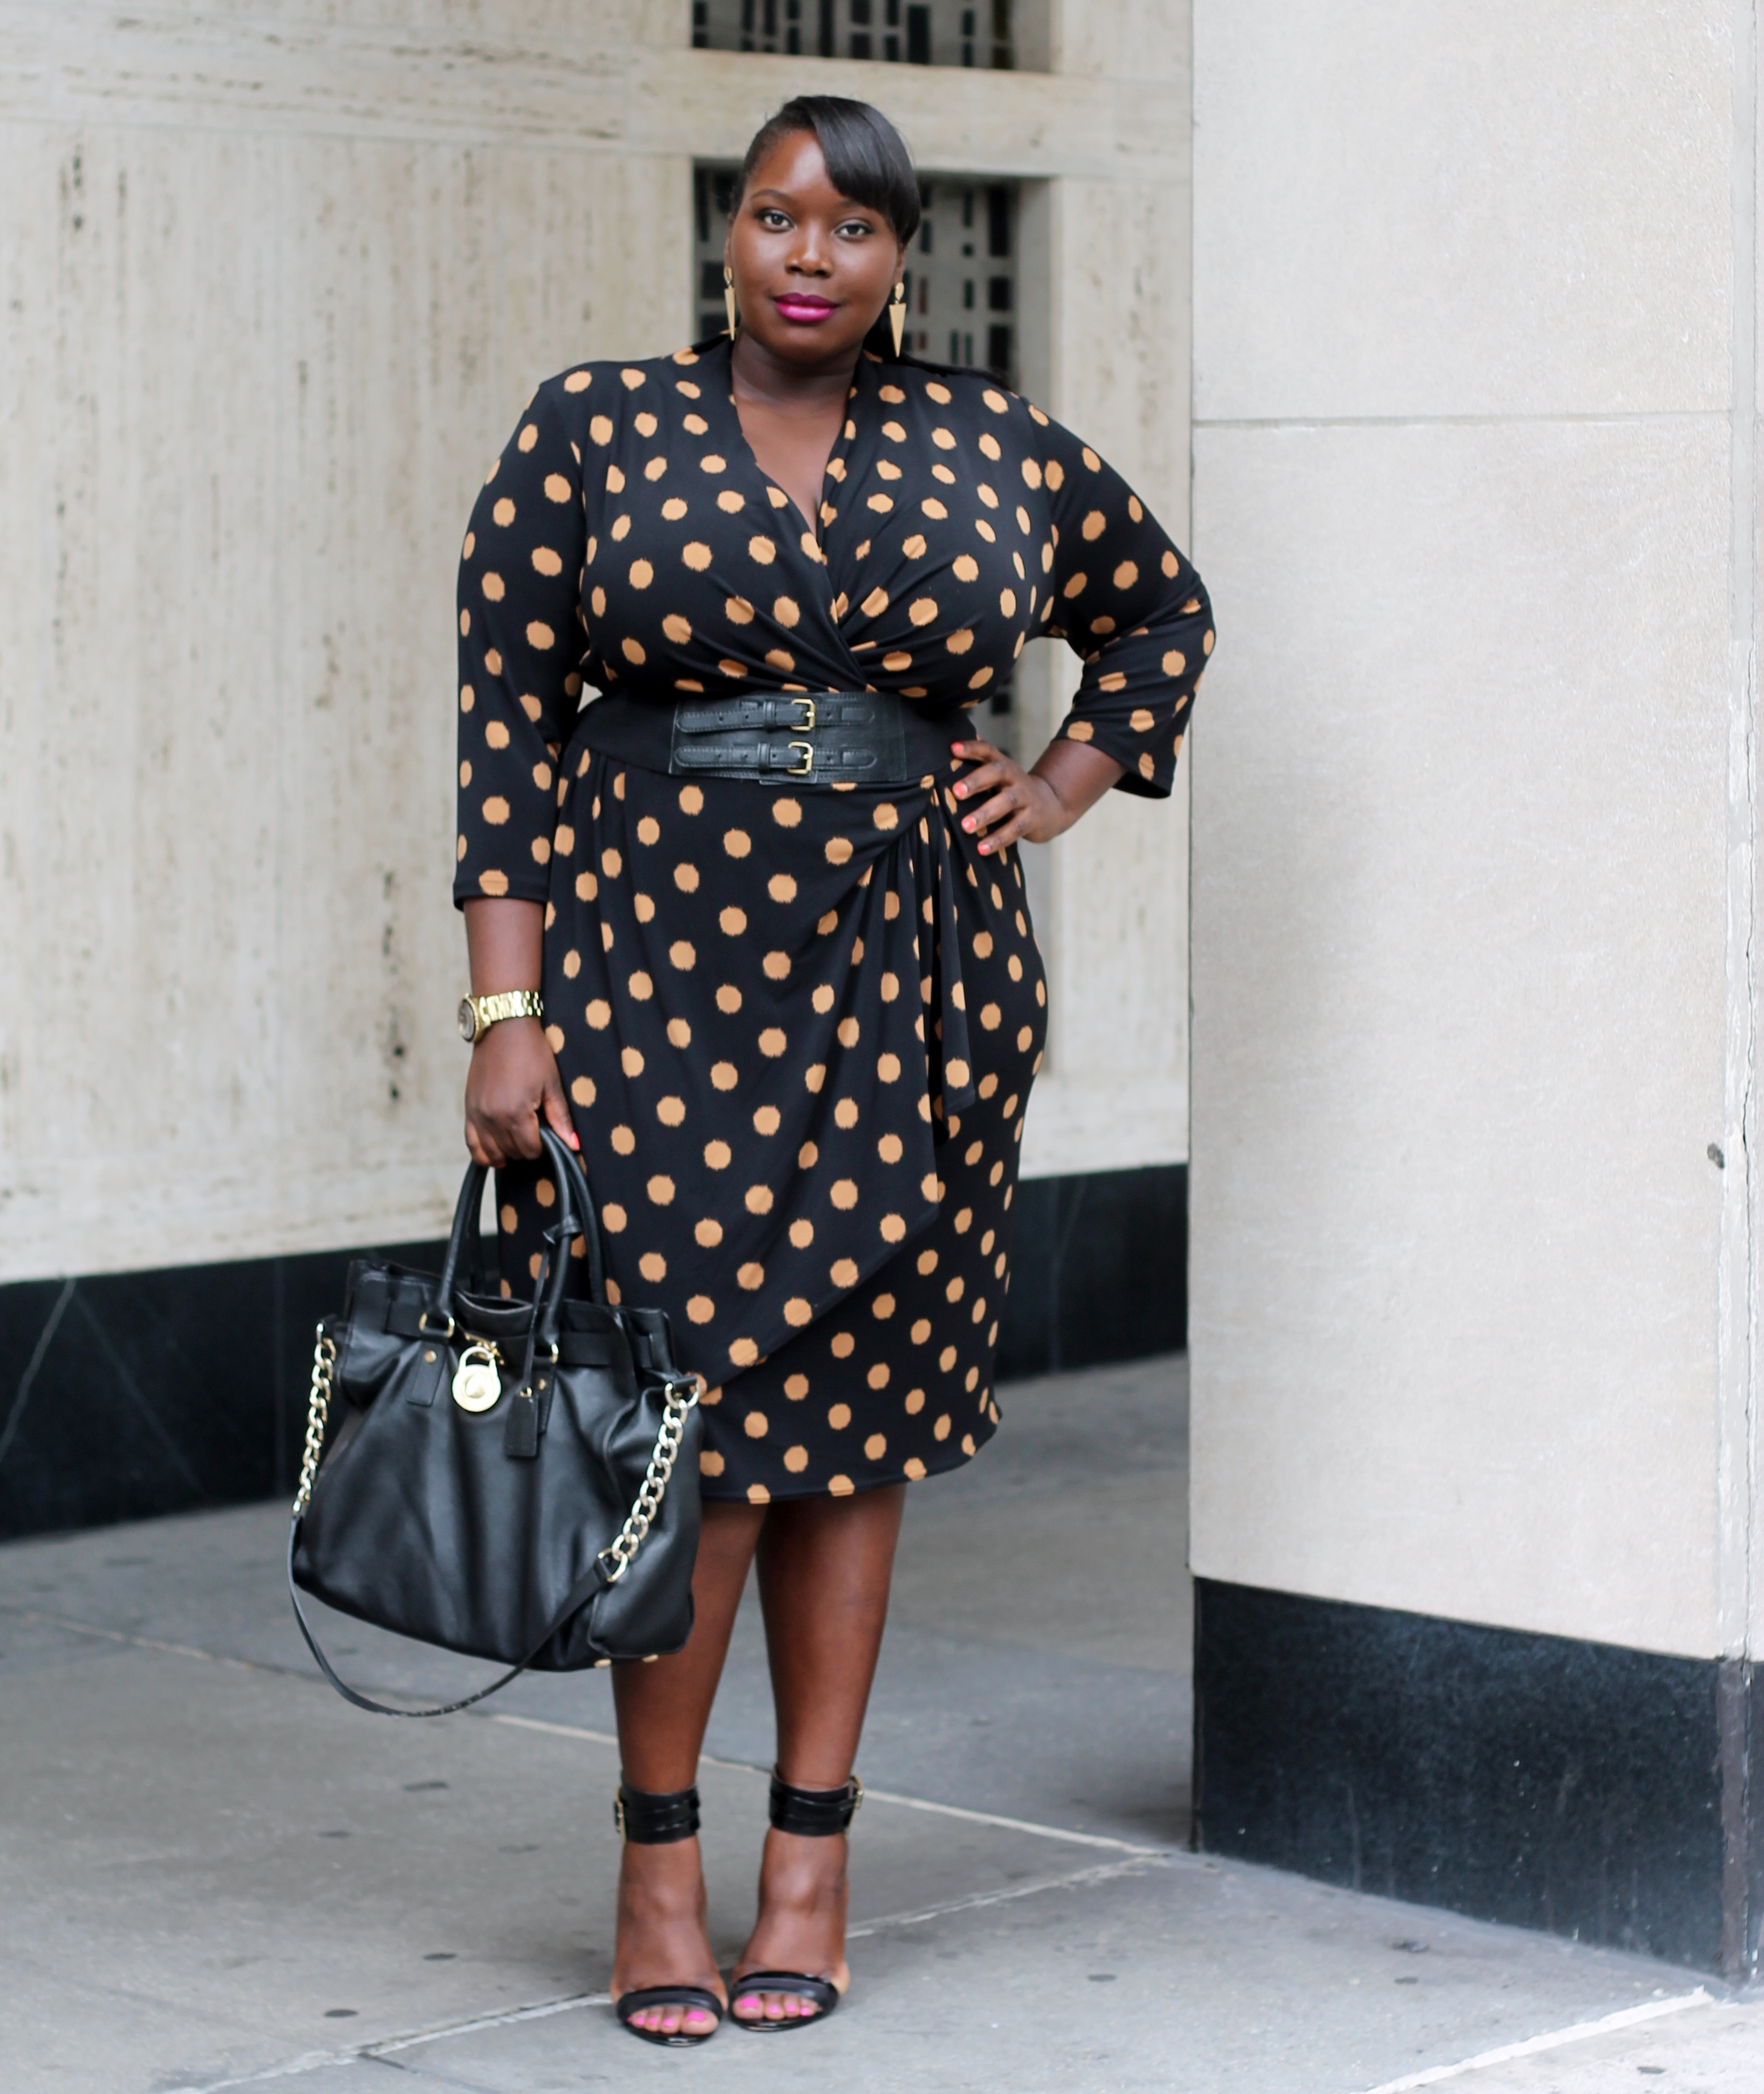 Buy michael kors plus size dresses > OFF67% Discounted